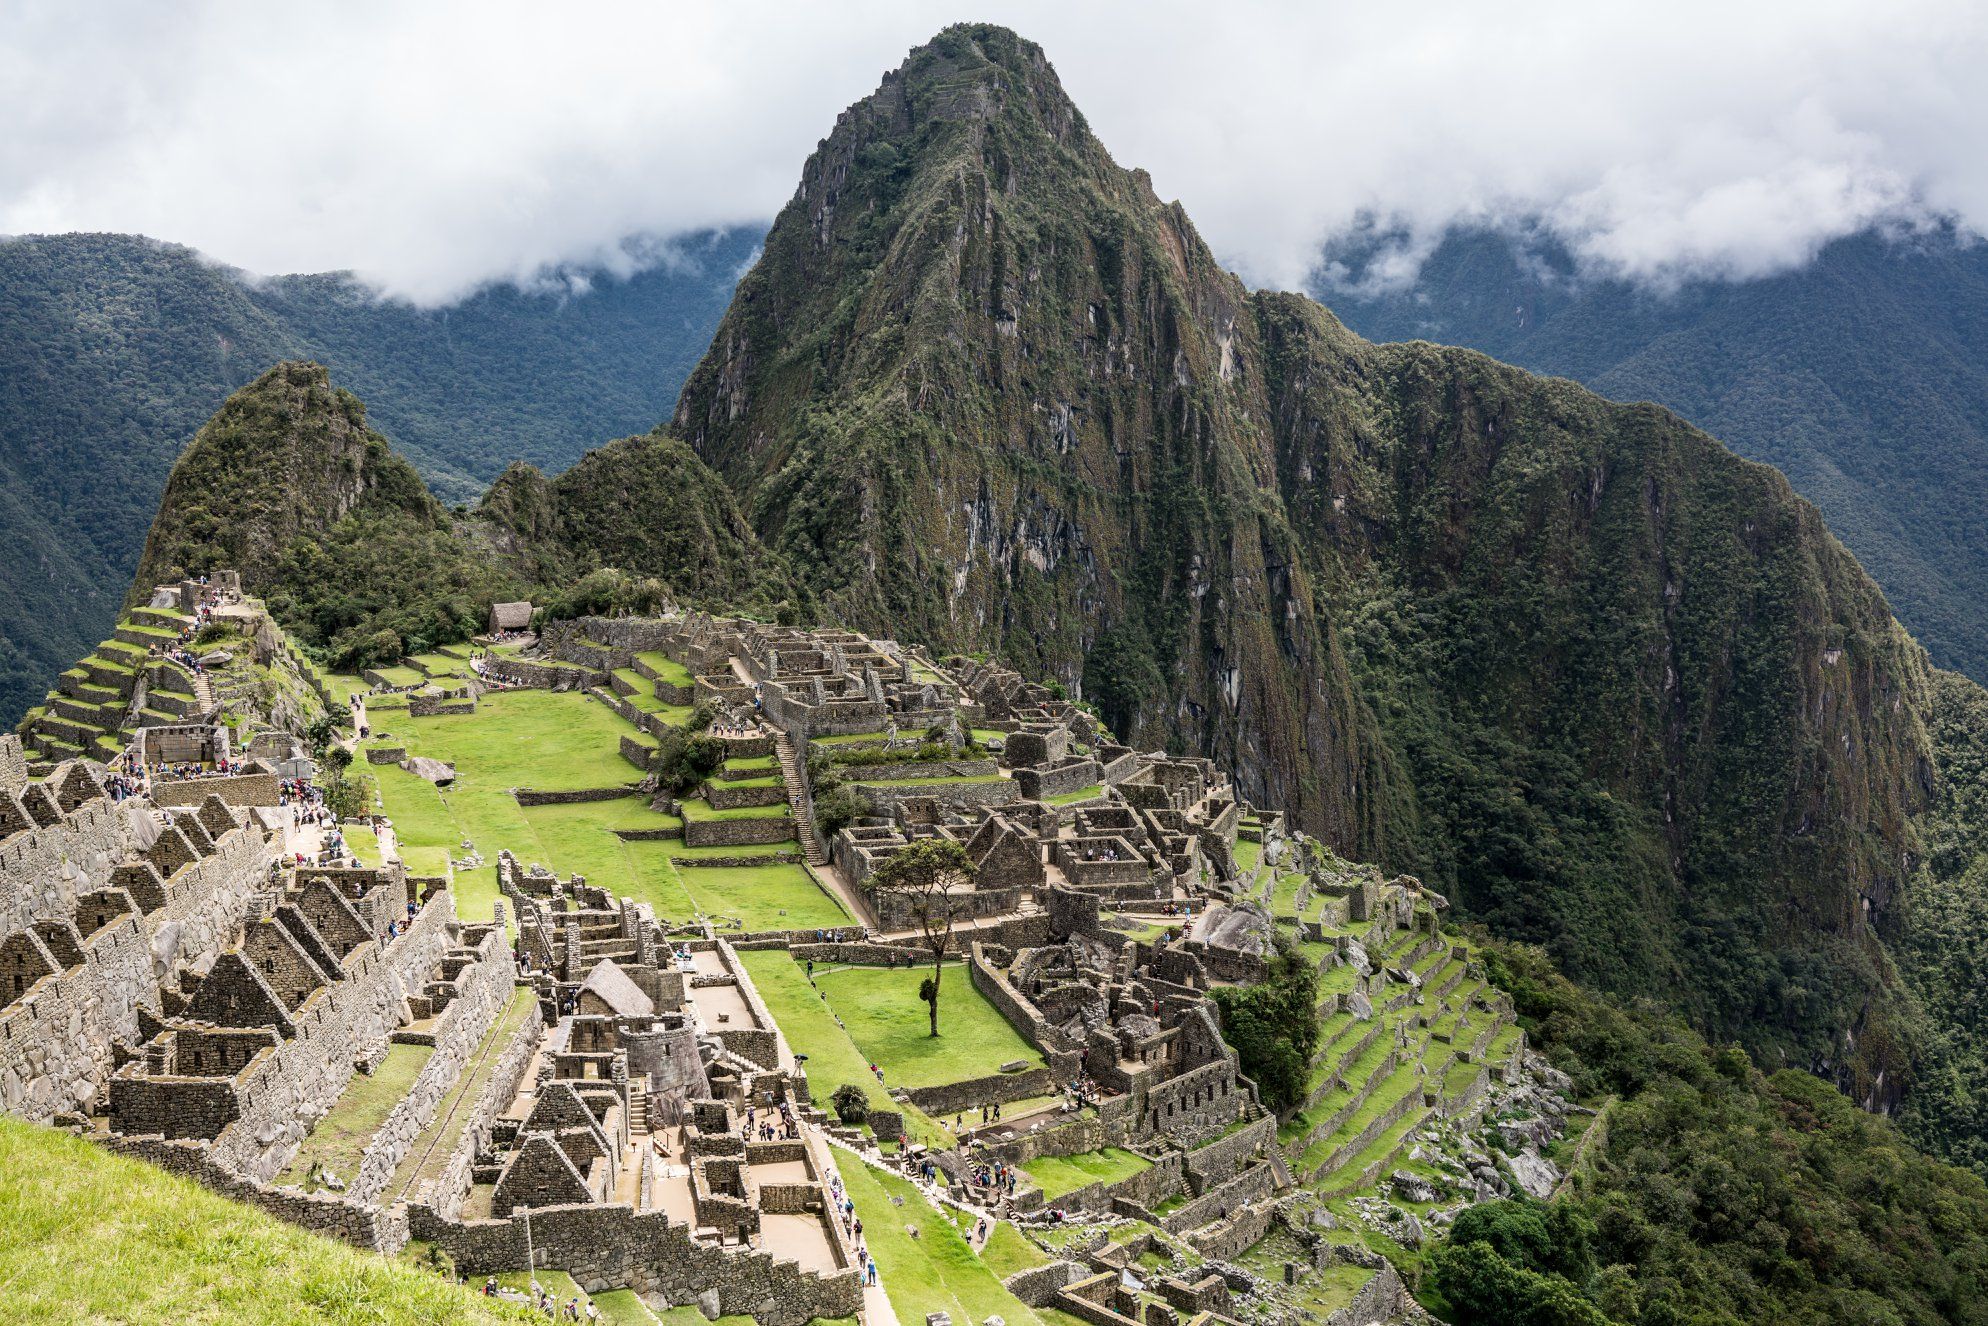 Machu Picchu in all of its glory. Photo Cred: Sakib Alam.